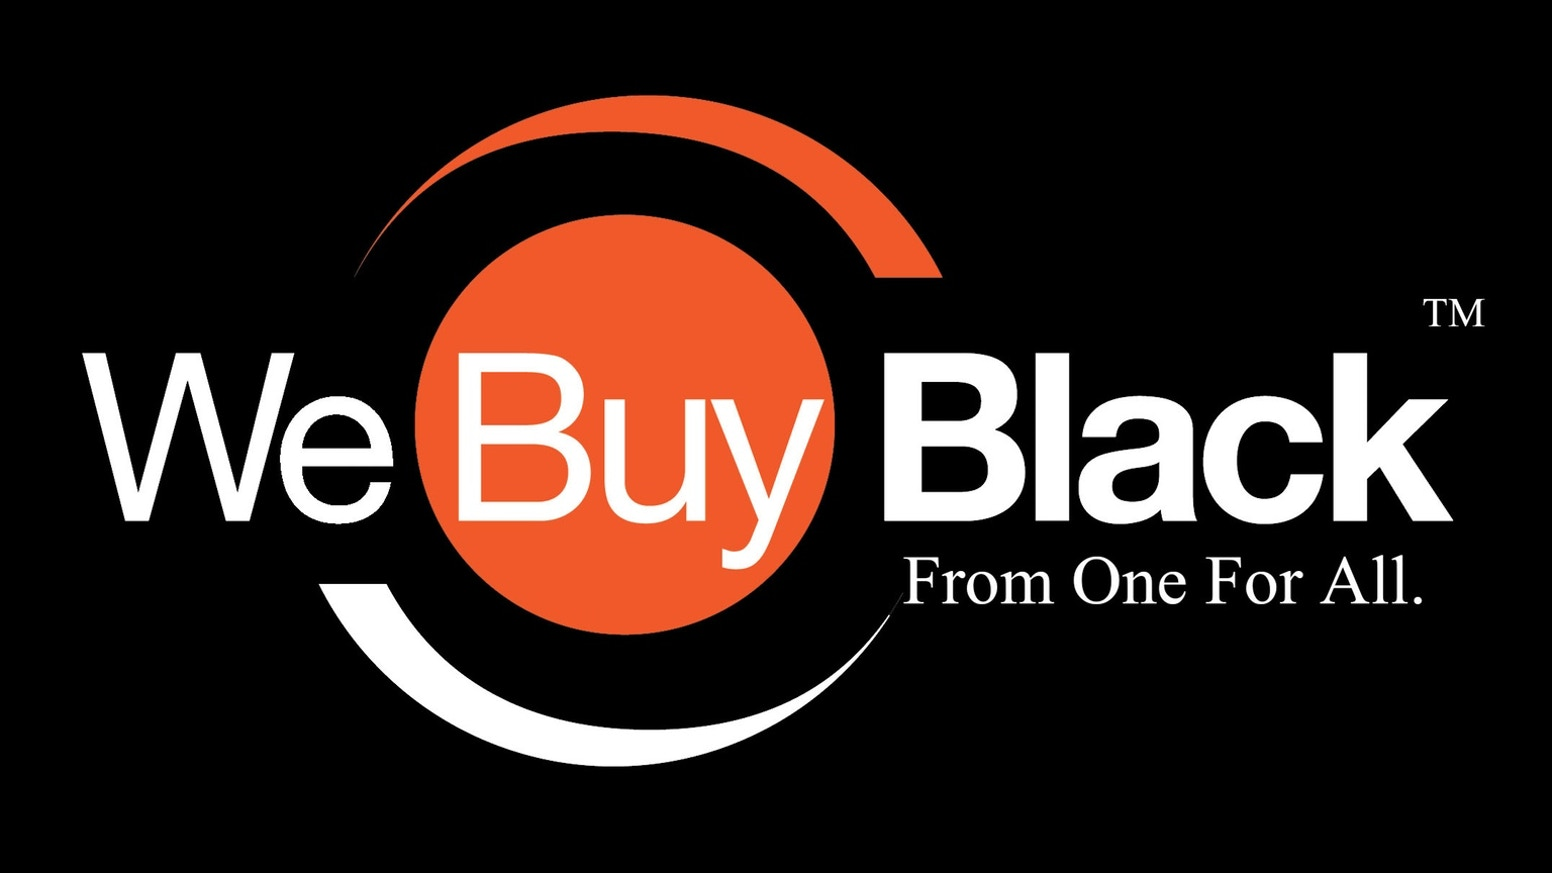 After countless pleas from our community, WeBuyBlack will now expand to include Black Owned Service-Based Businesses.